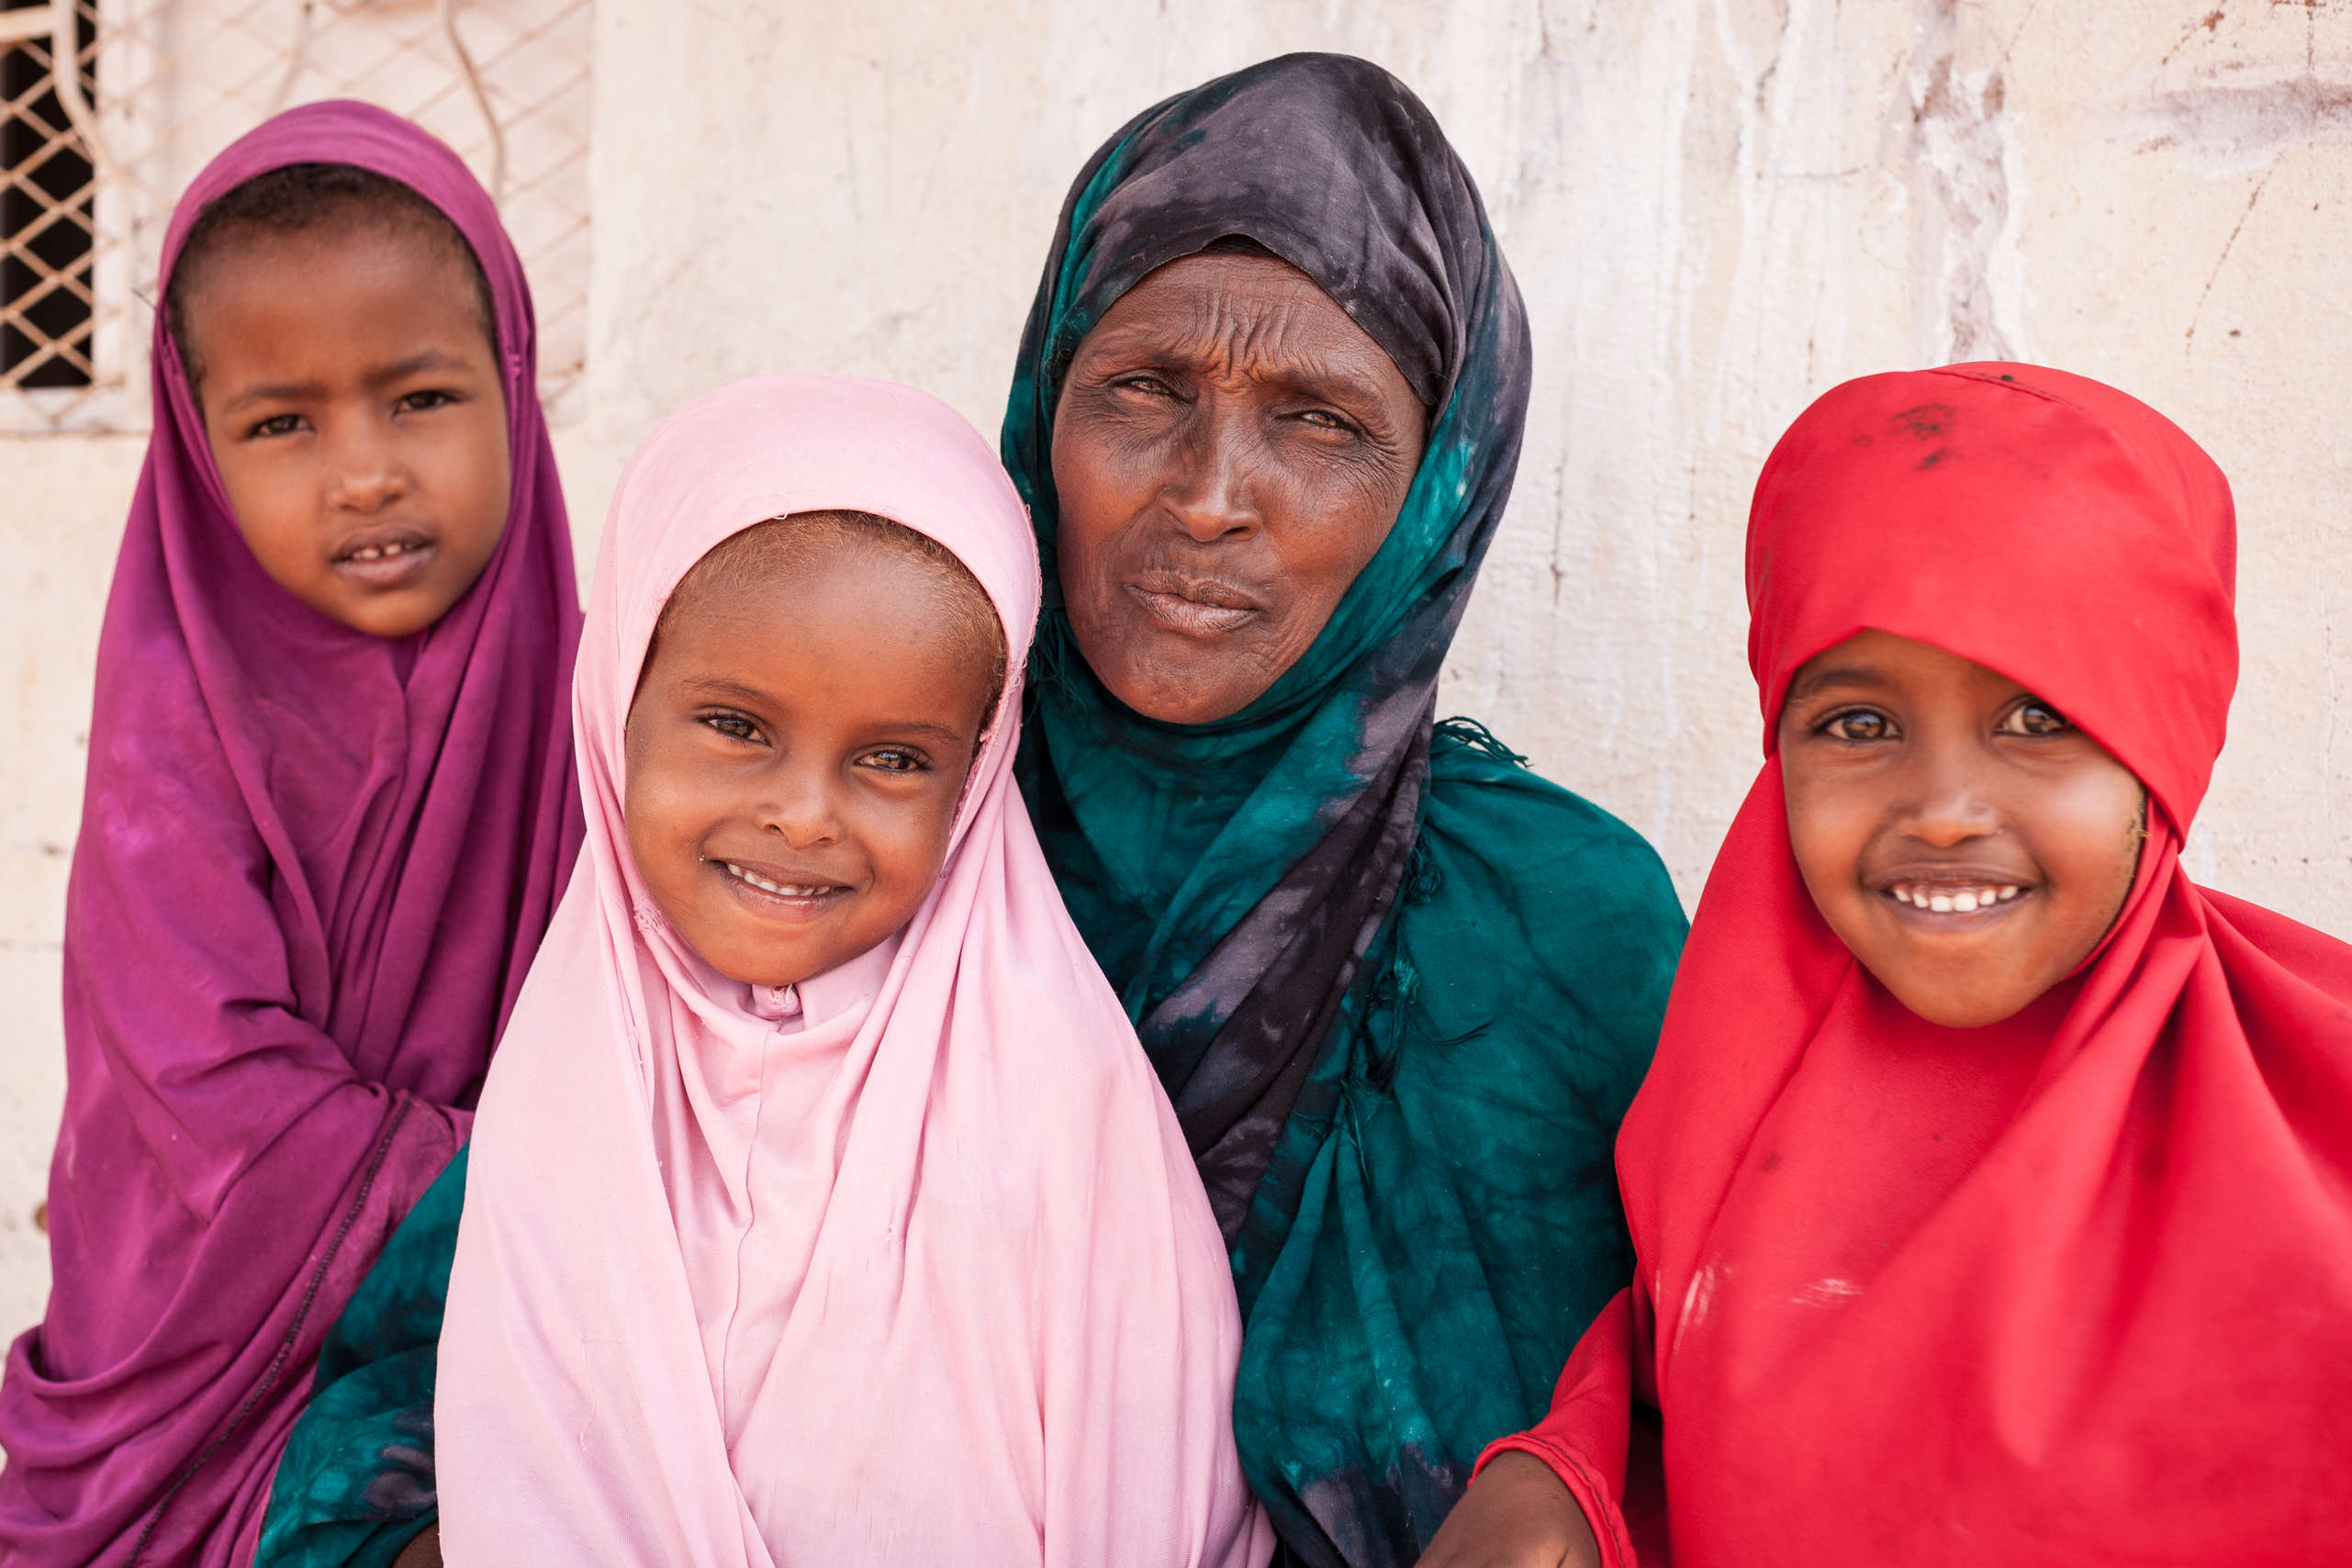 Halimo poses with her granddaughters, recovered from malnutrition in Somalia